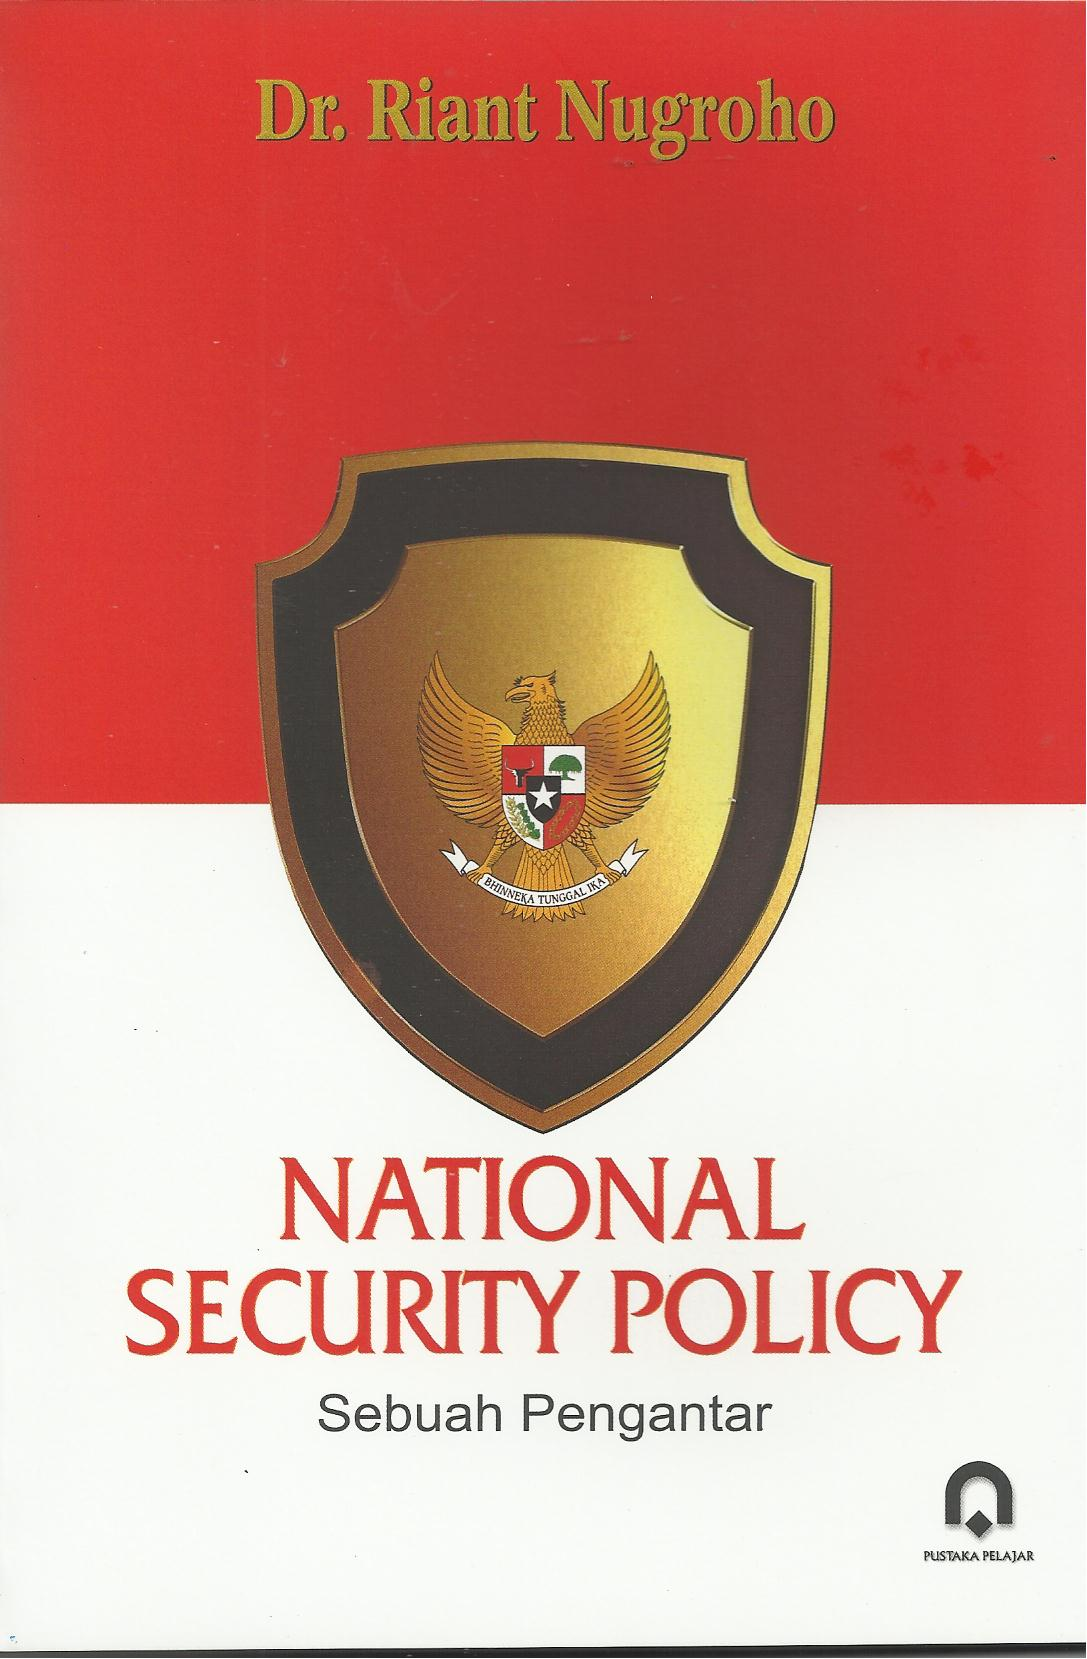 National Security Policy (Sebuah Pengantar)